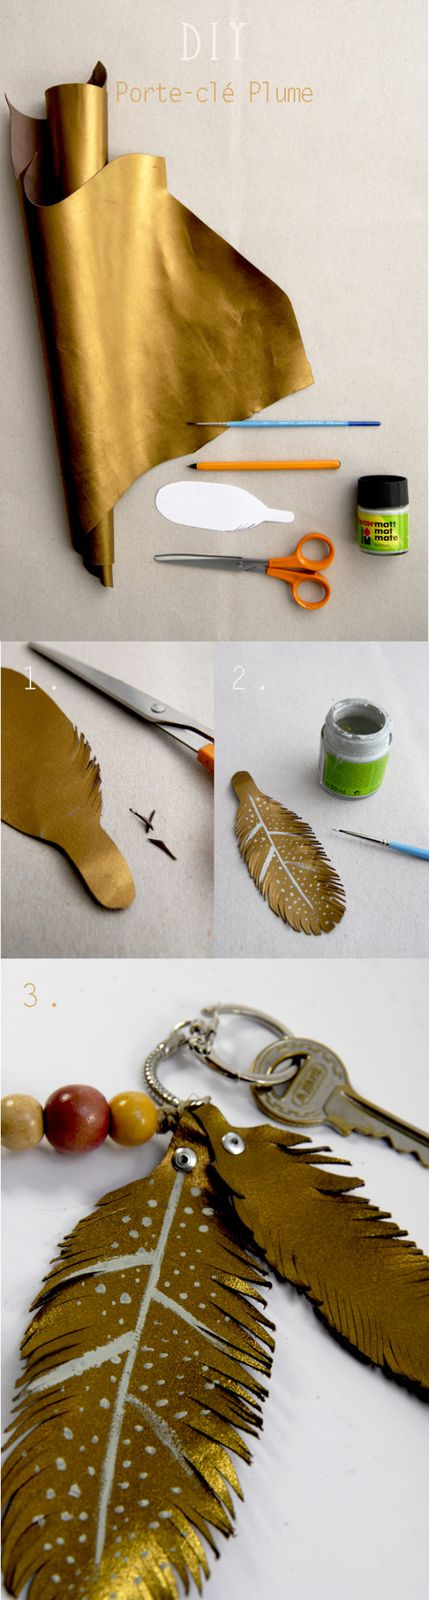 DIY-Keychain-leather-feather-1-copie-2.jpg